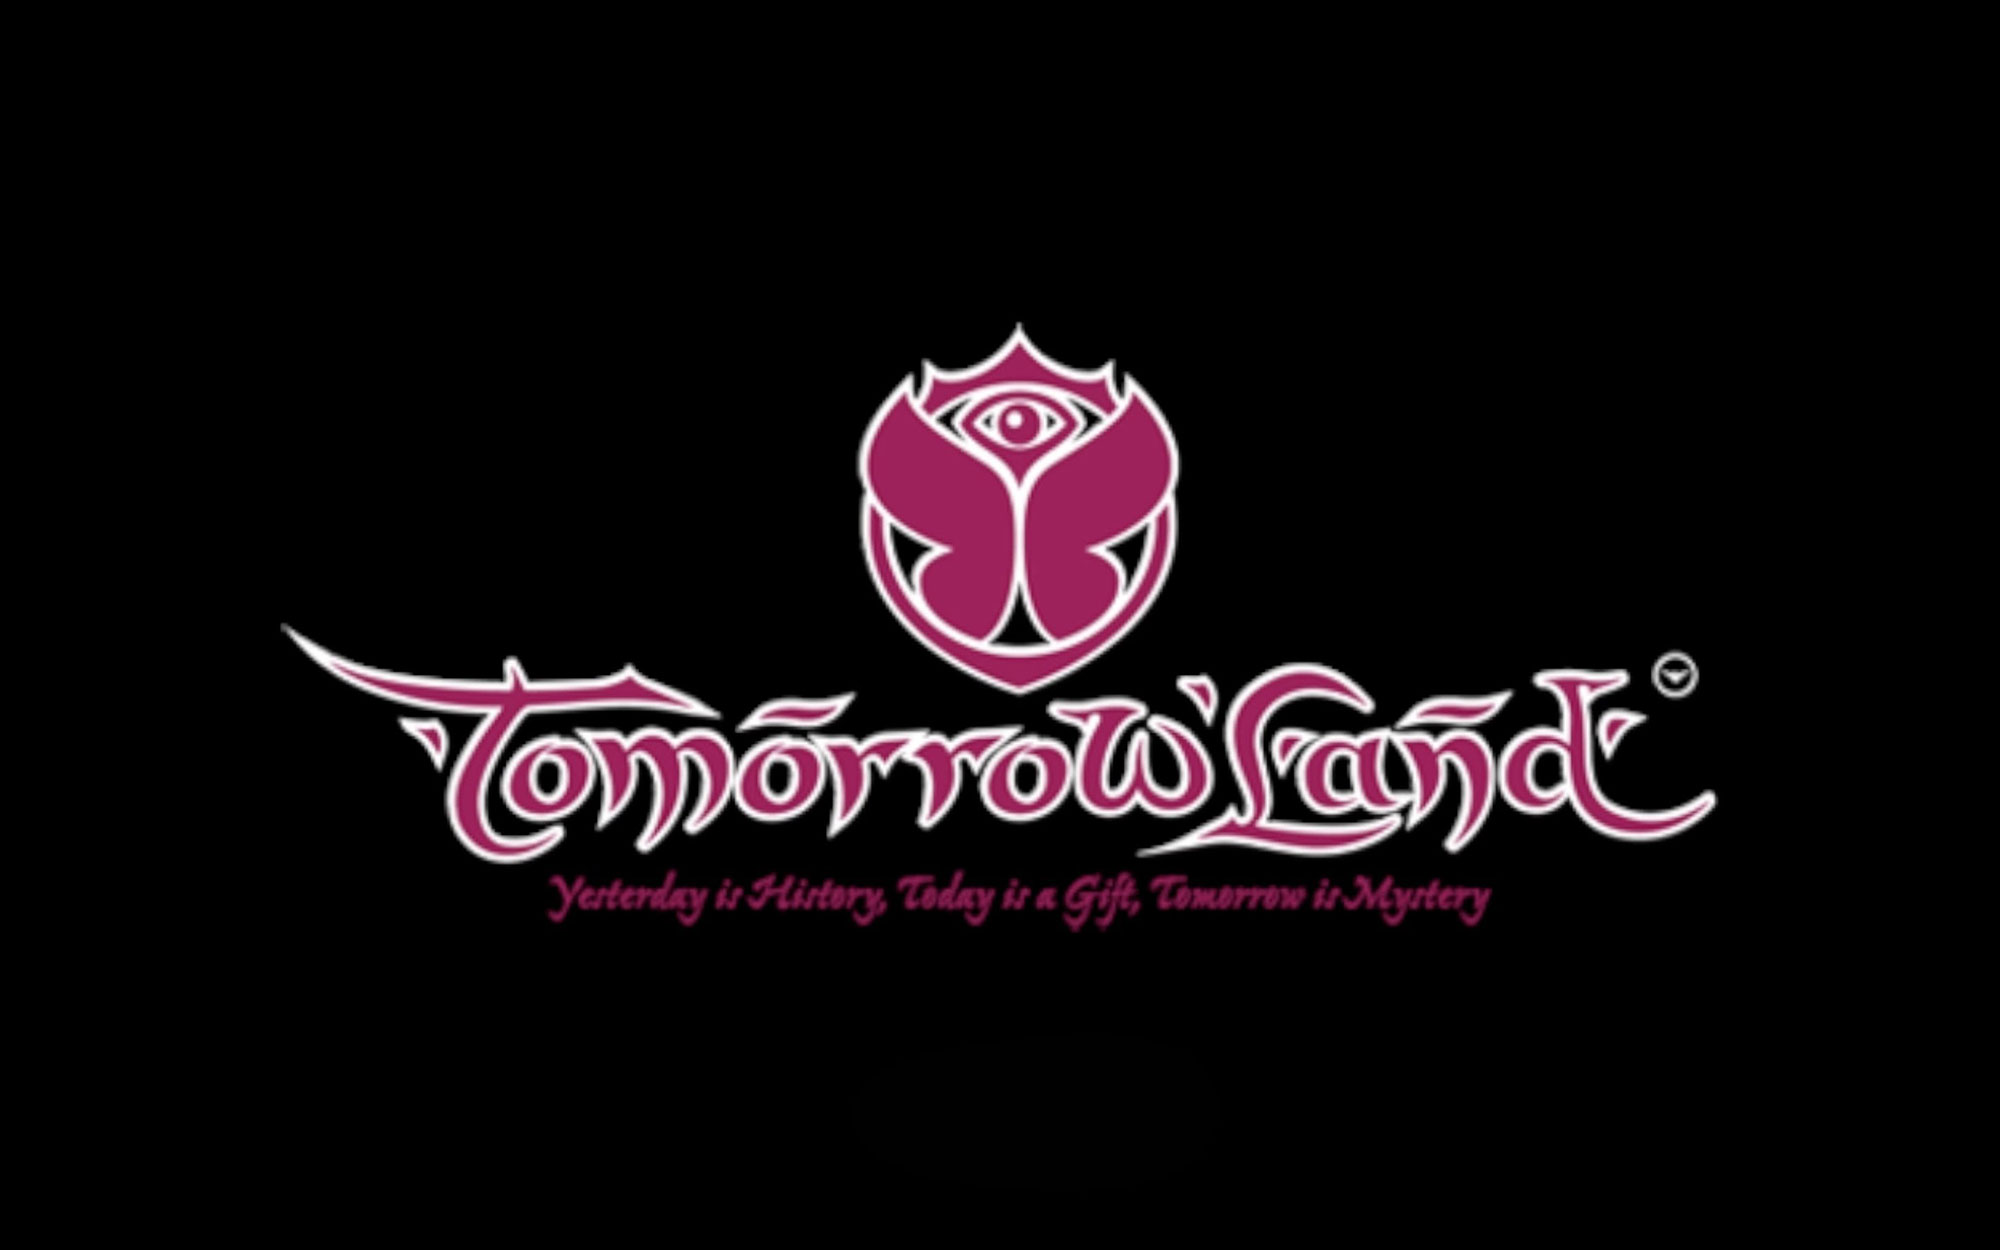 Pin Tomorrowland Festival Logo On Pinterest